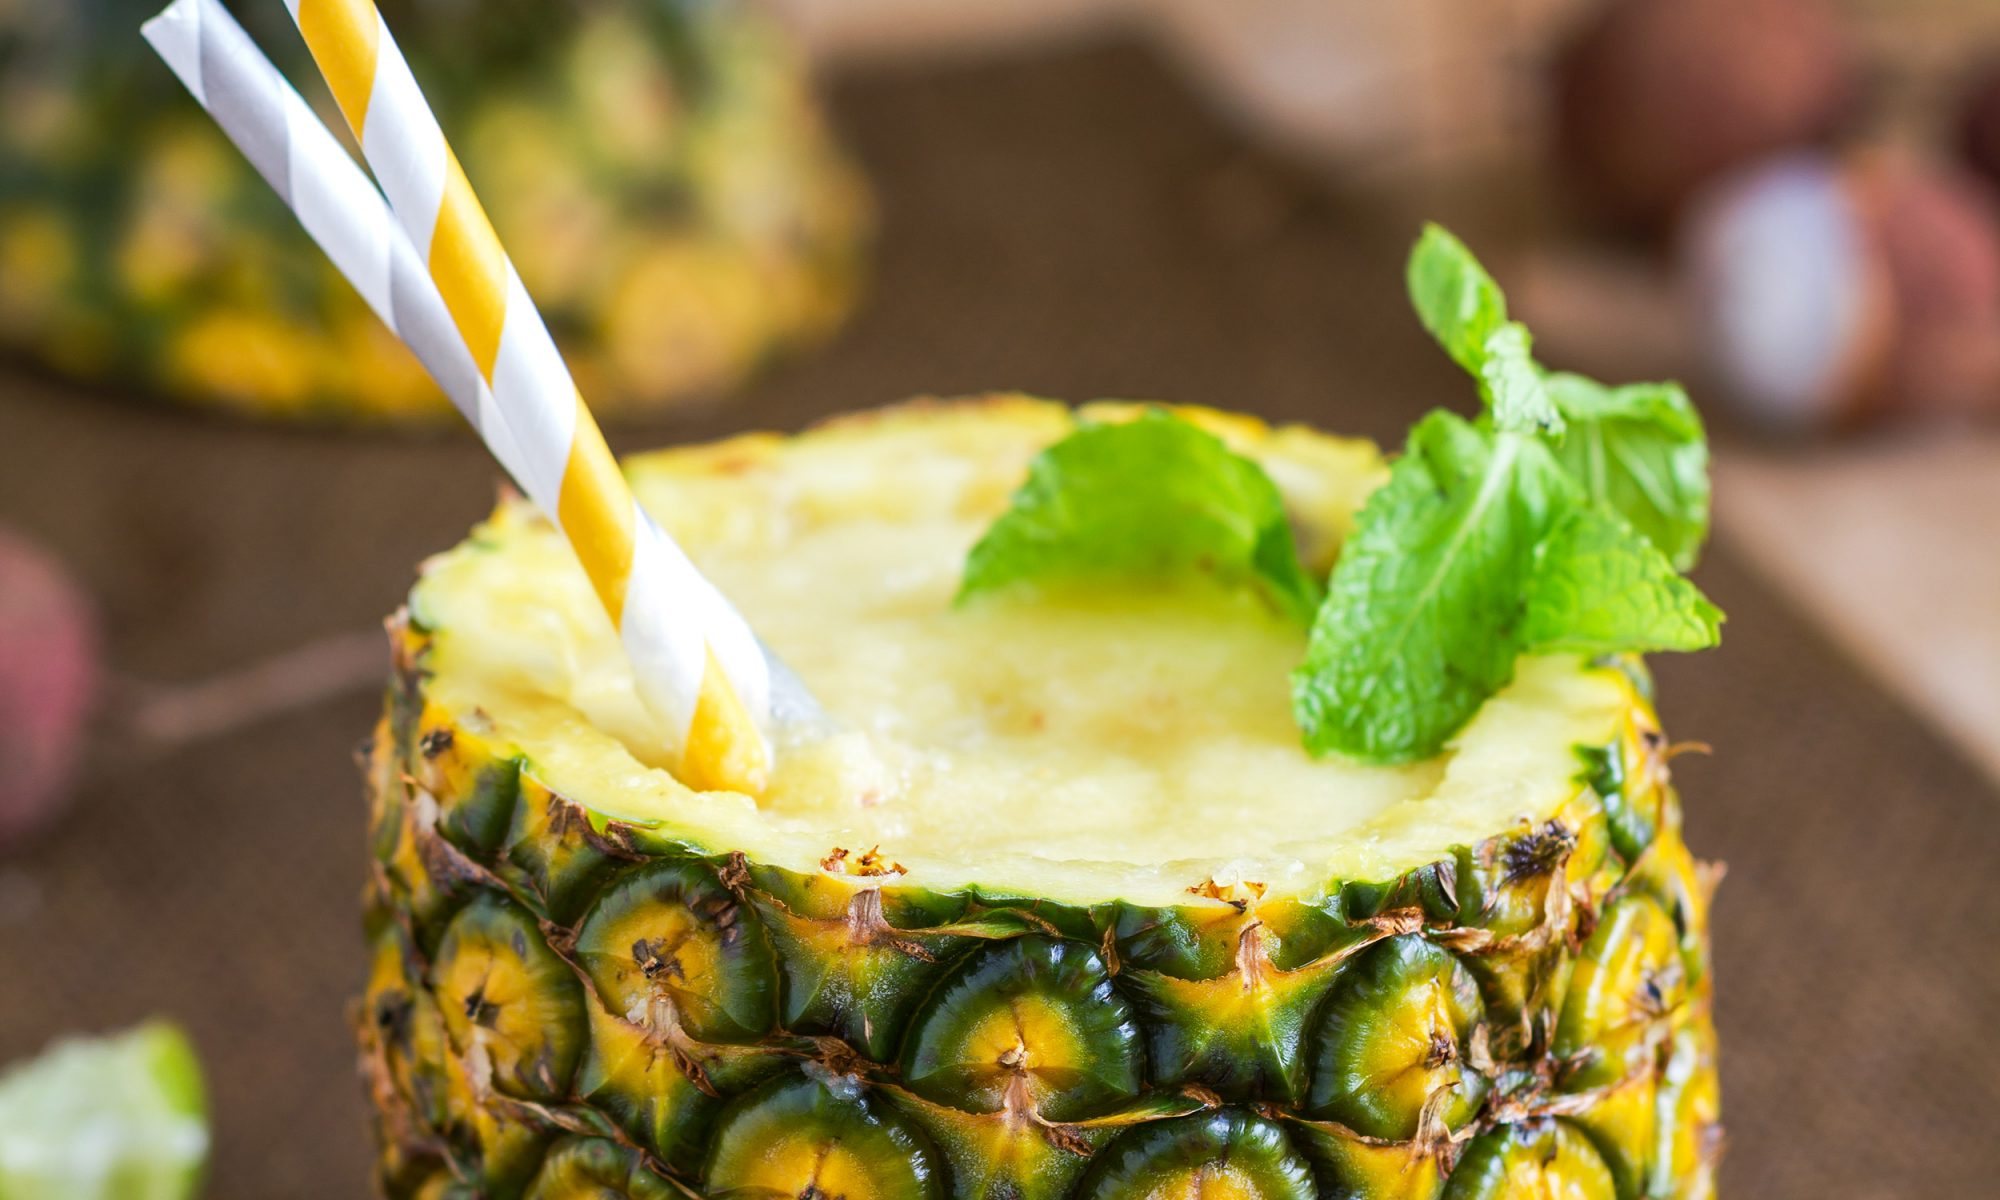 EC: This Minty Pineapple Smoothie Is a Sweet Reminder of Rio